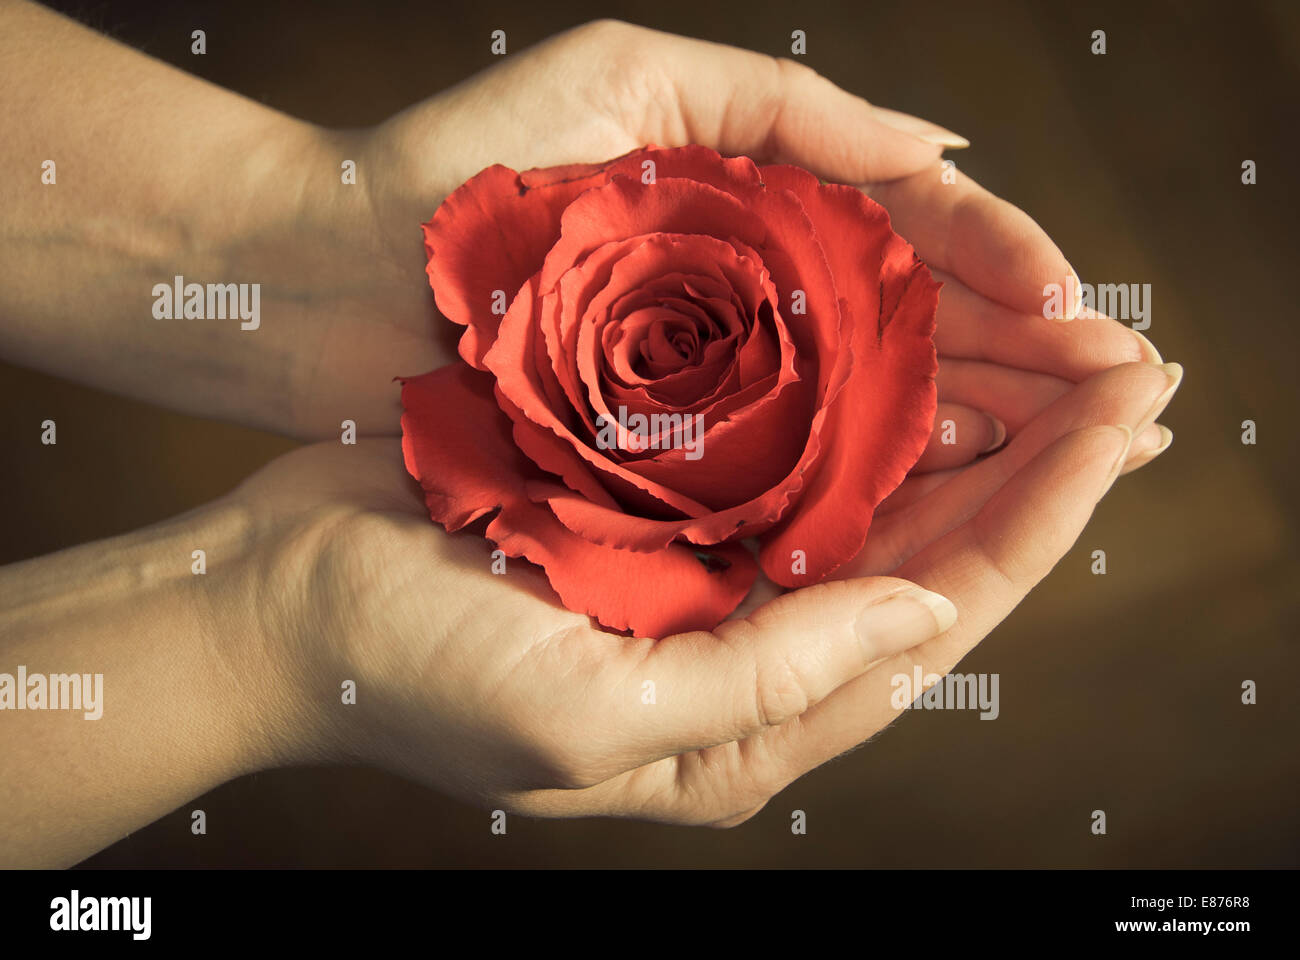 female hands holding a red rose - Stock Image